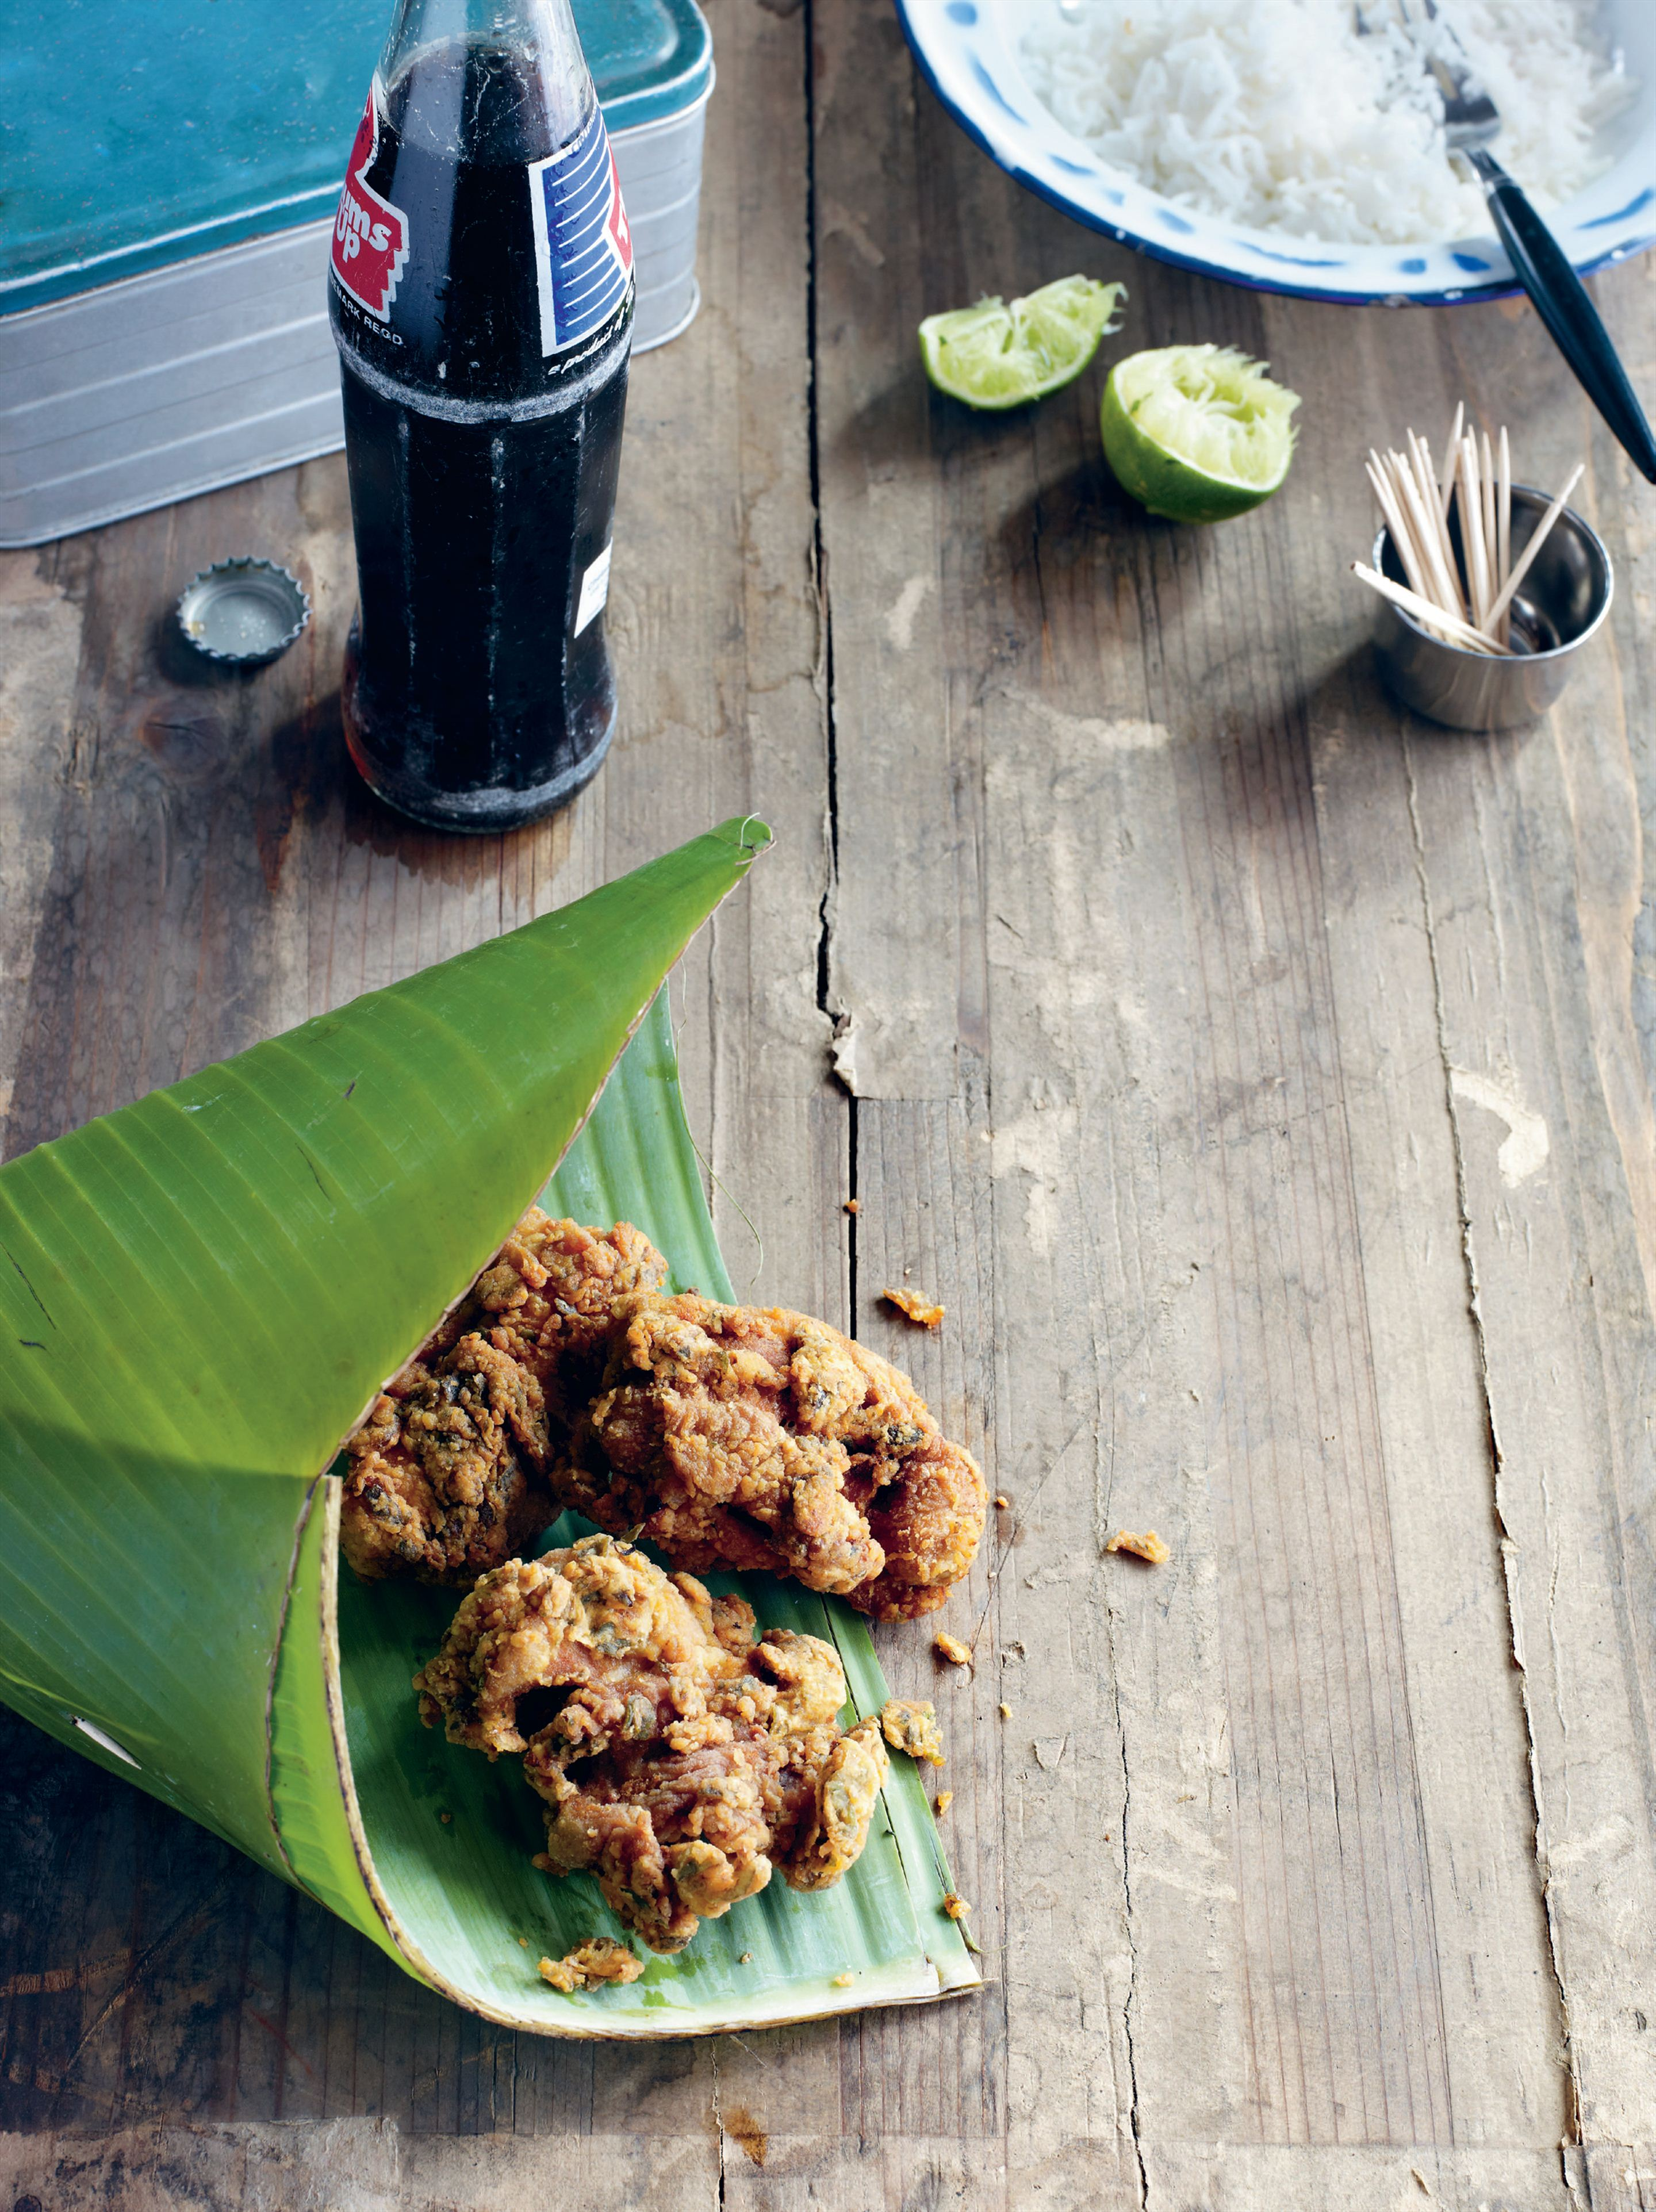 South Indian fried chicken